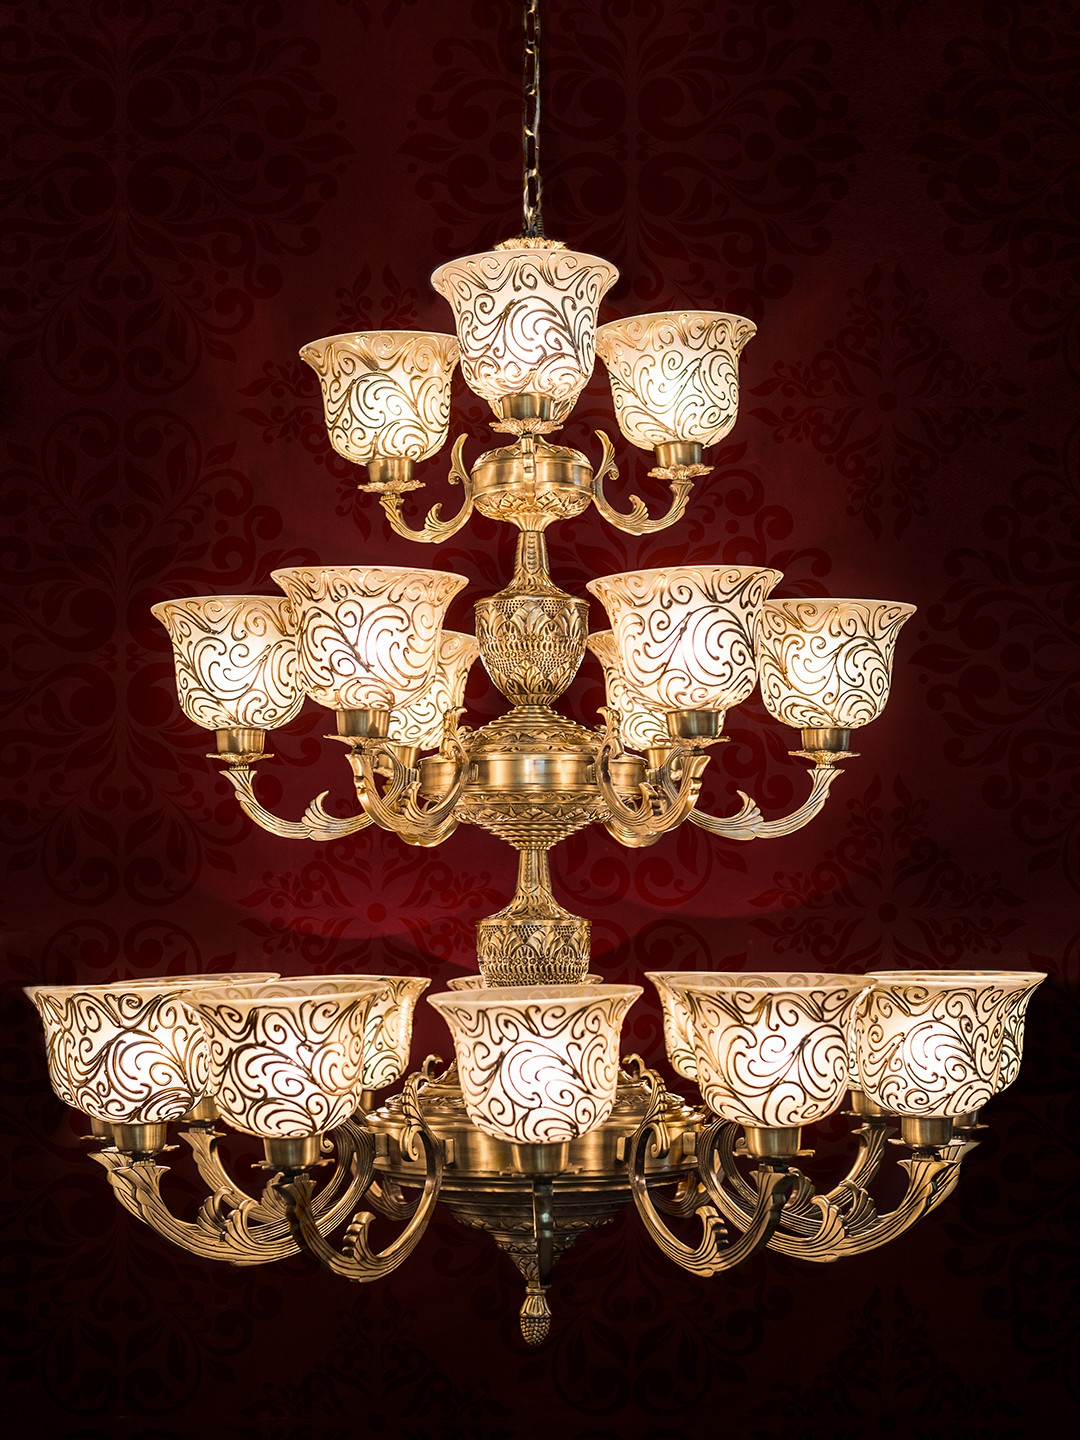 Jaisalmer 3 Tier 21 Lights Brass Chandelier